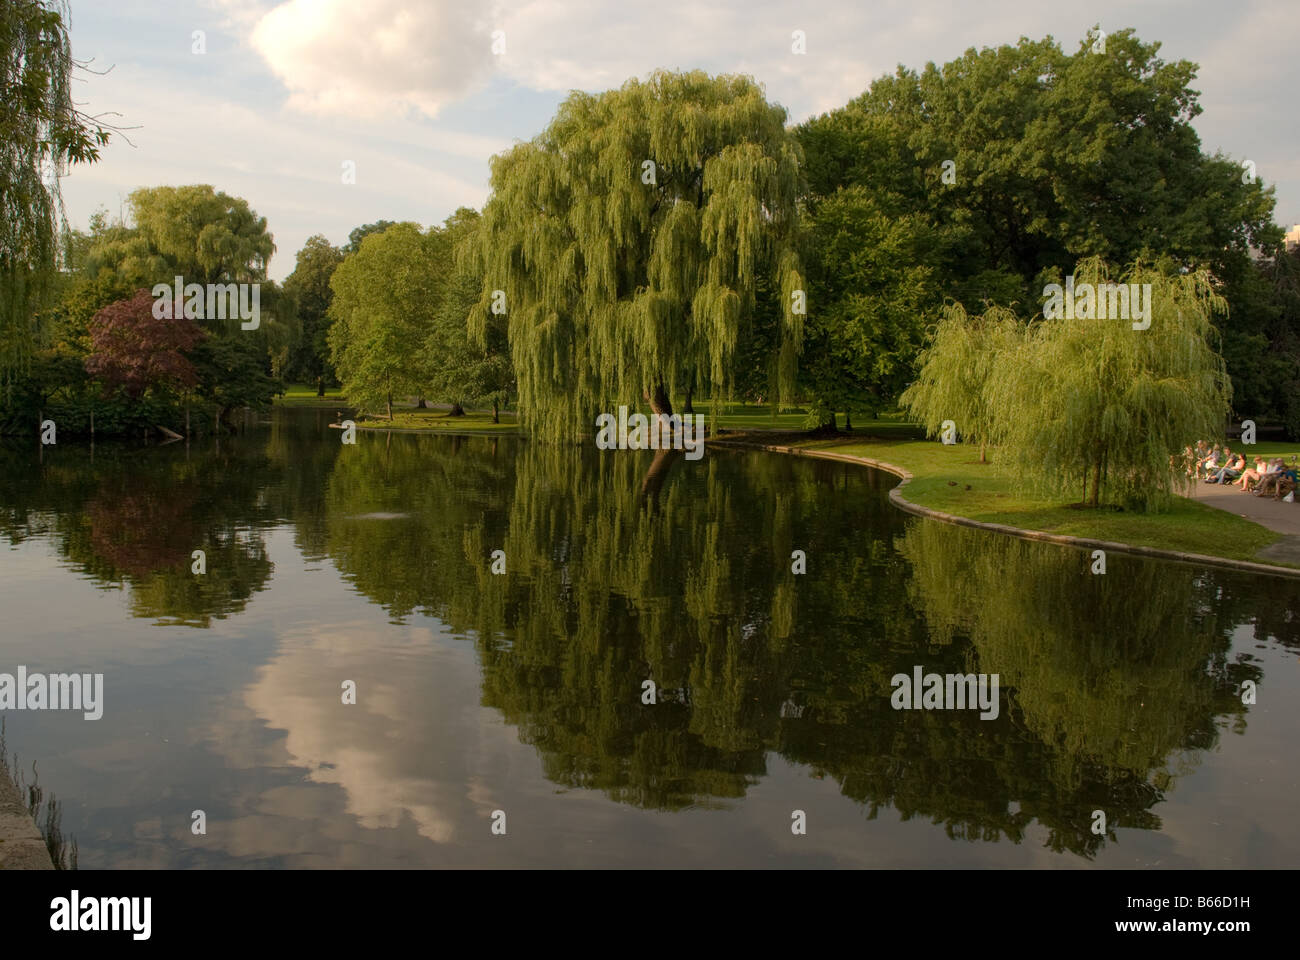 Boston Gardens Stock Photos & Boston Gardens Stock Images - Alamy